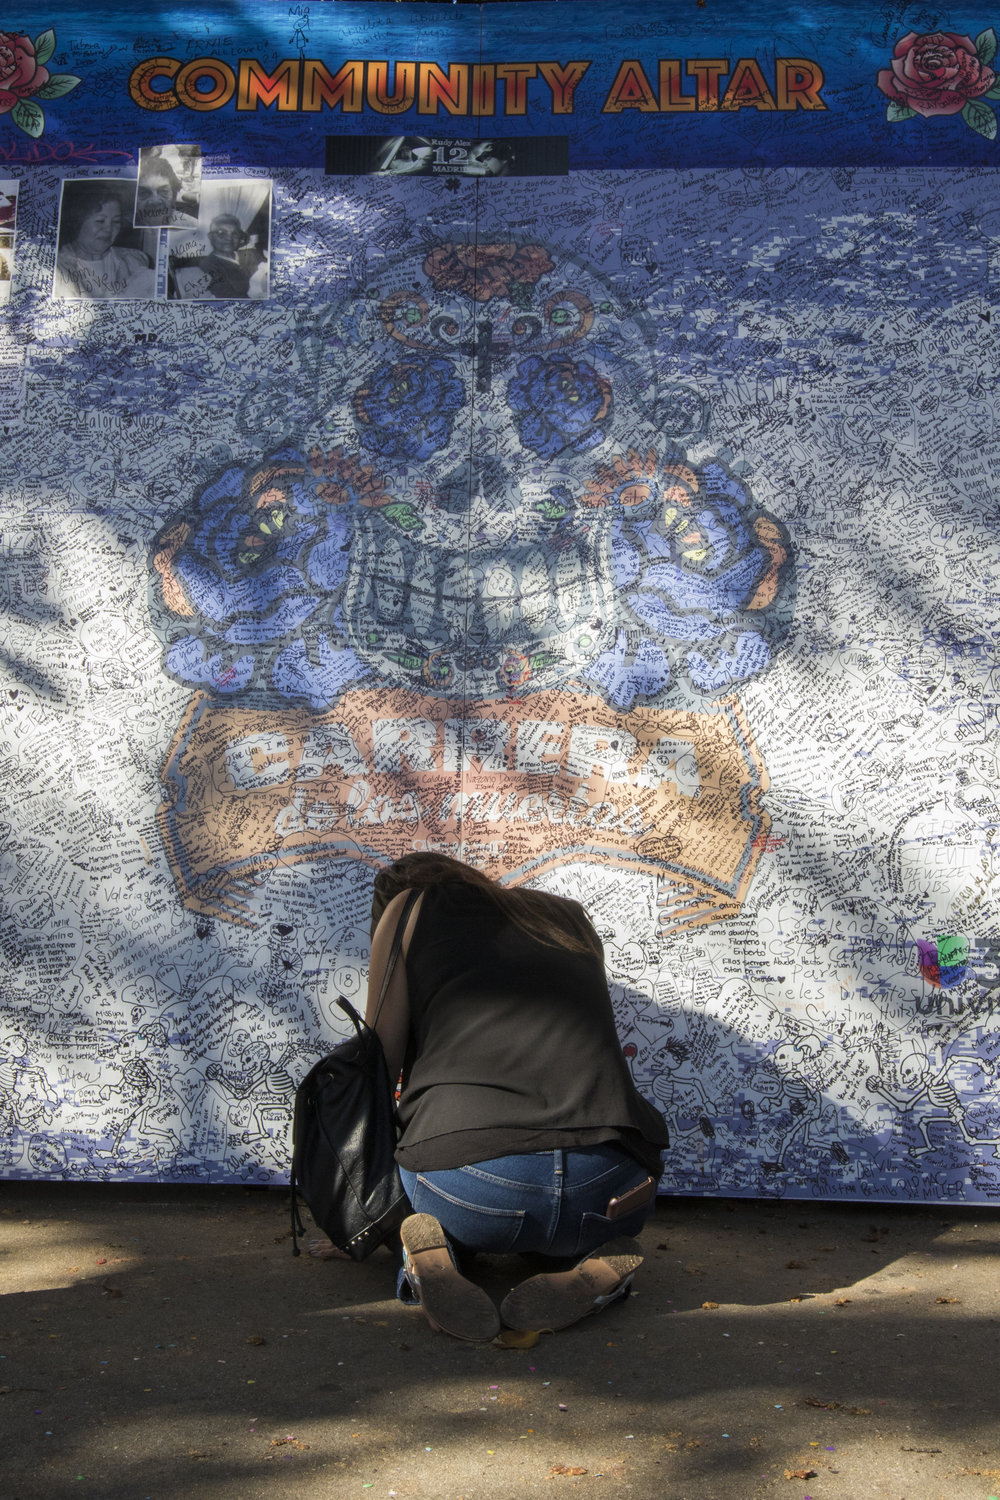 A woman pays respect for her deceased loved one at the Community Altar as part of the Dia De Los Muertos festivities on Olvera Street in downtown Los Angeles, California. The community altar is a place where event attendees can write the name or leave a photo of someone close to them who has passed away. (Zane Meyer-Thornton/Corsair Photo)